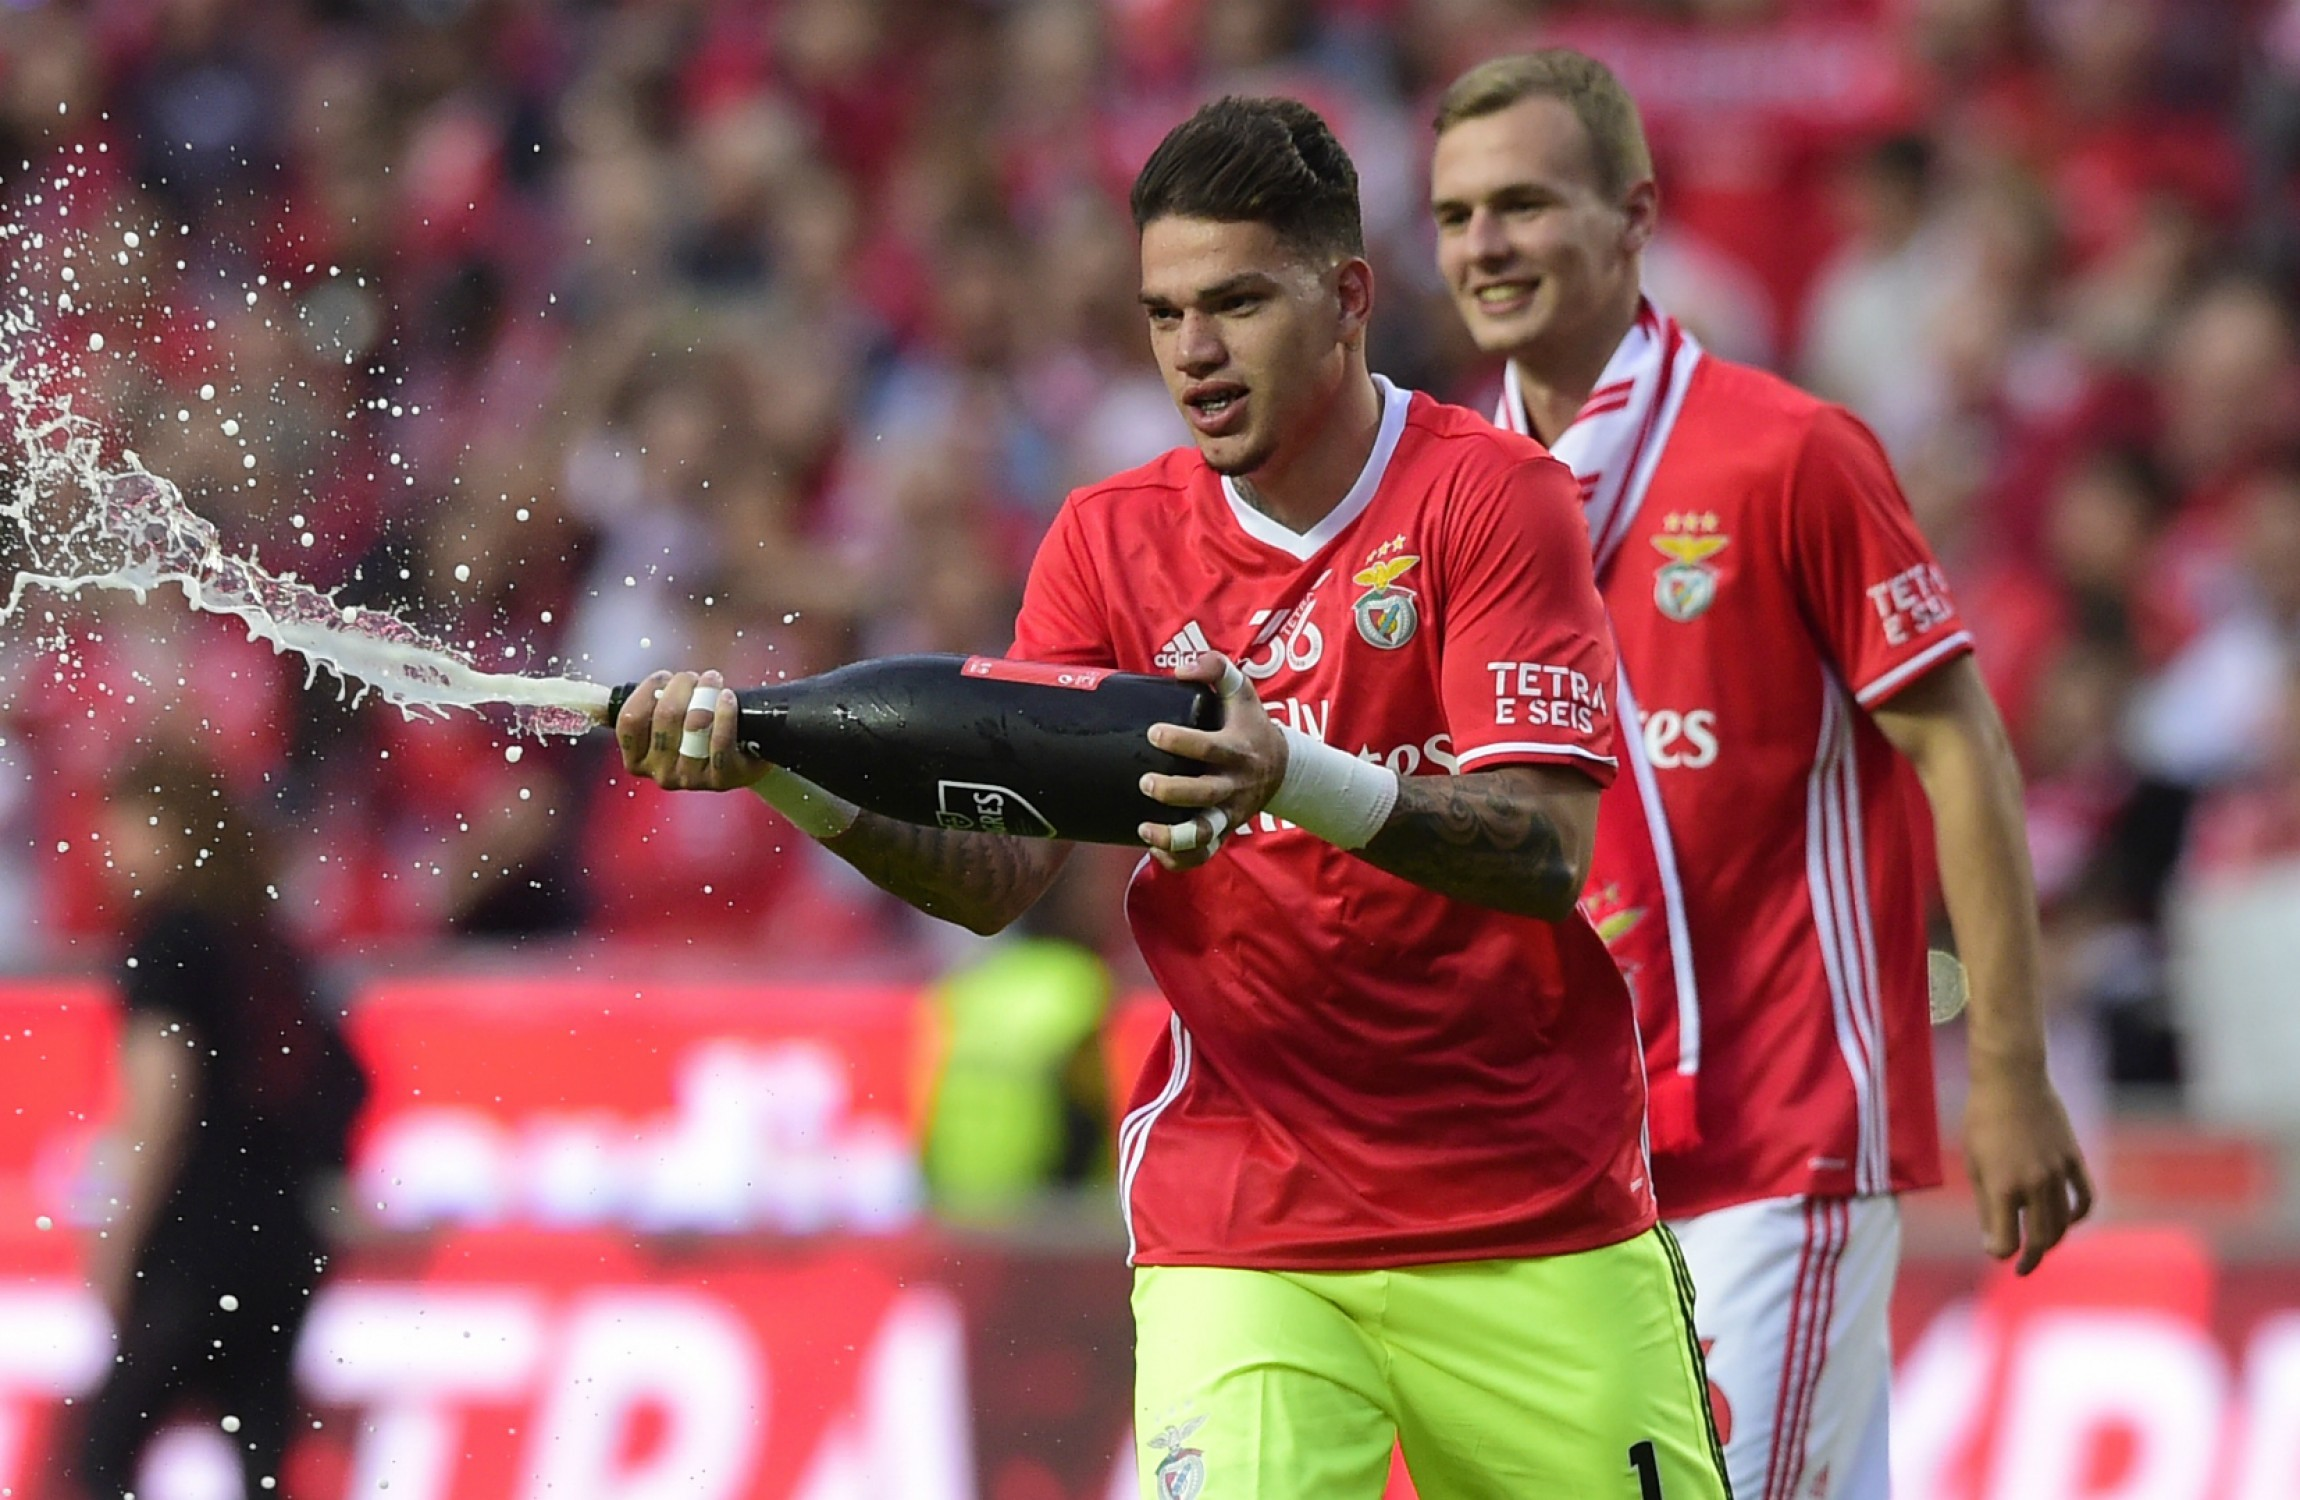 Manchester City have completed £34.7m Ederson signing, according to Benfica